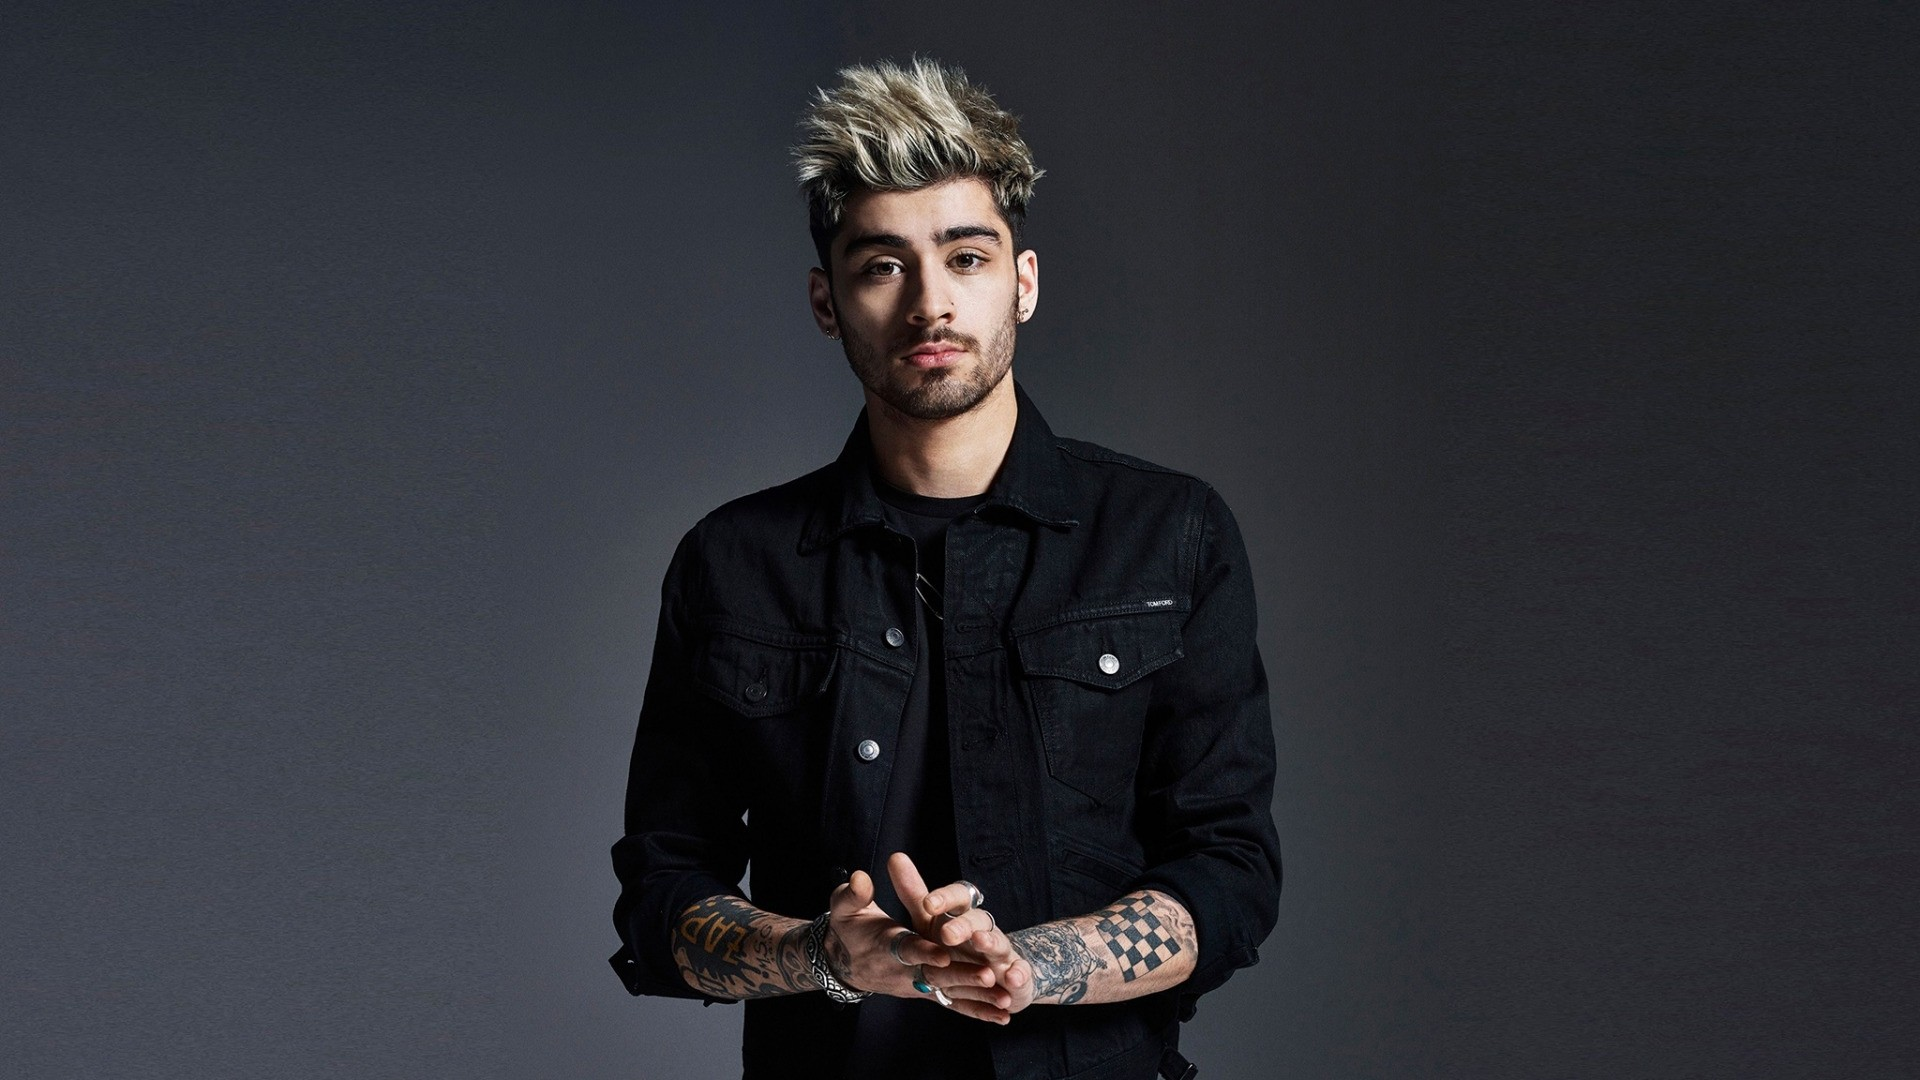 Zayn Malik hd wallpaper download